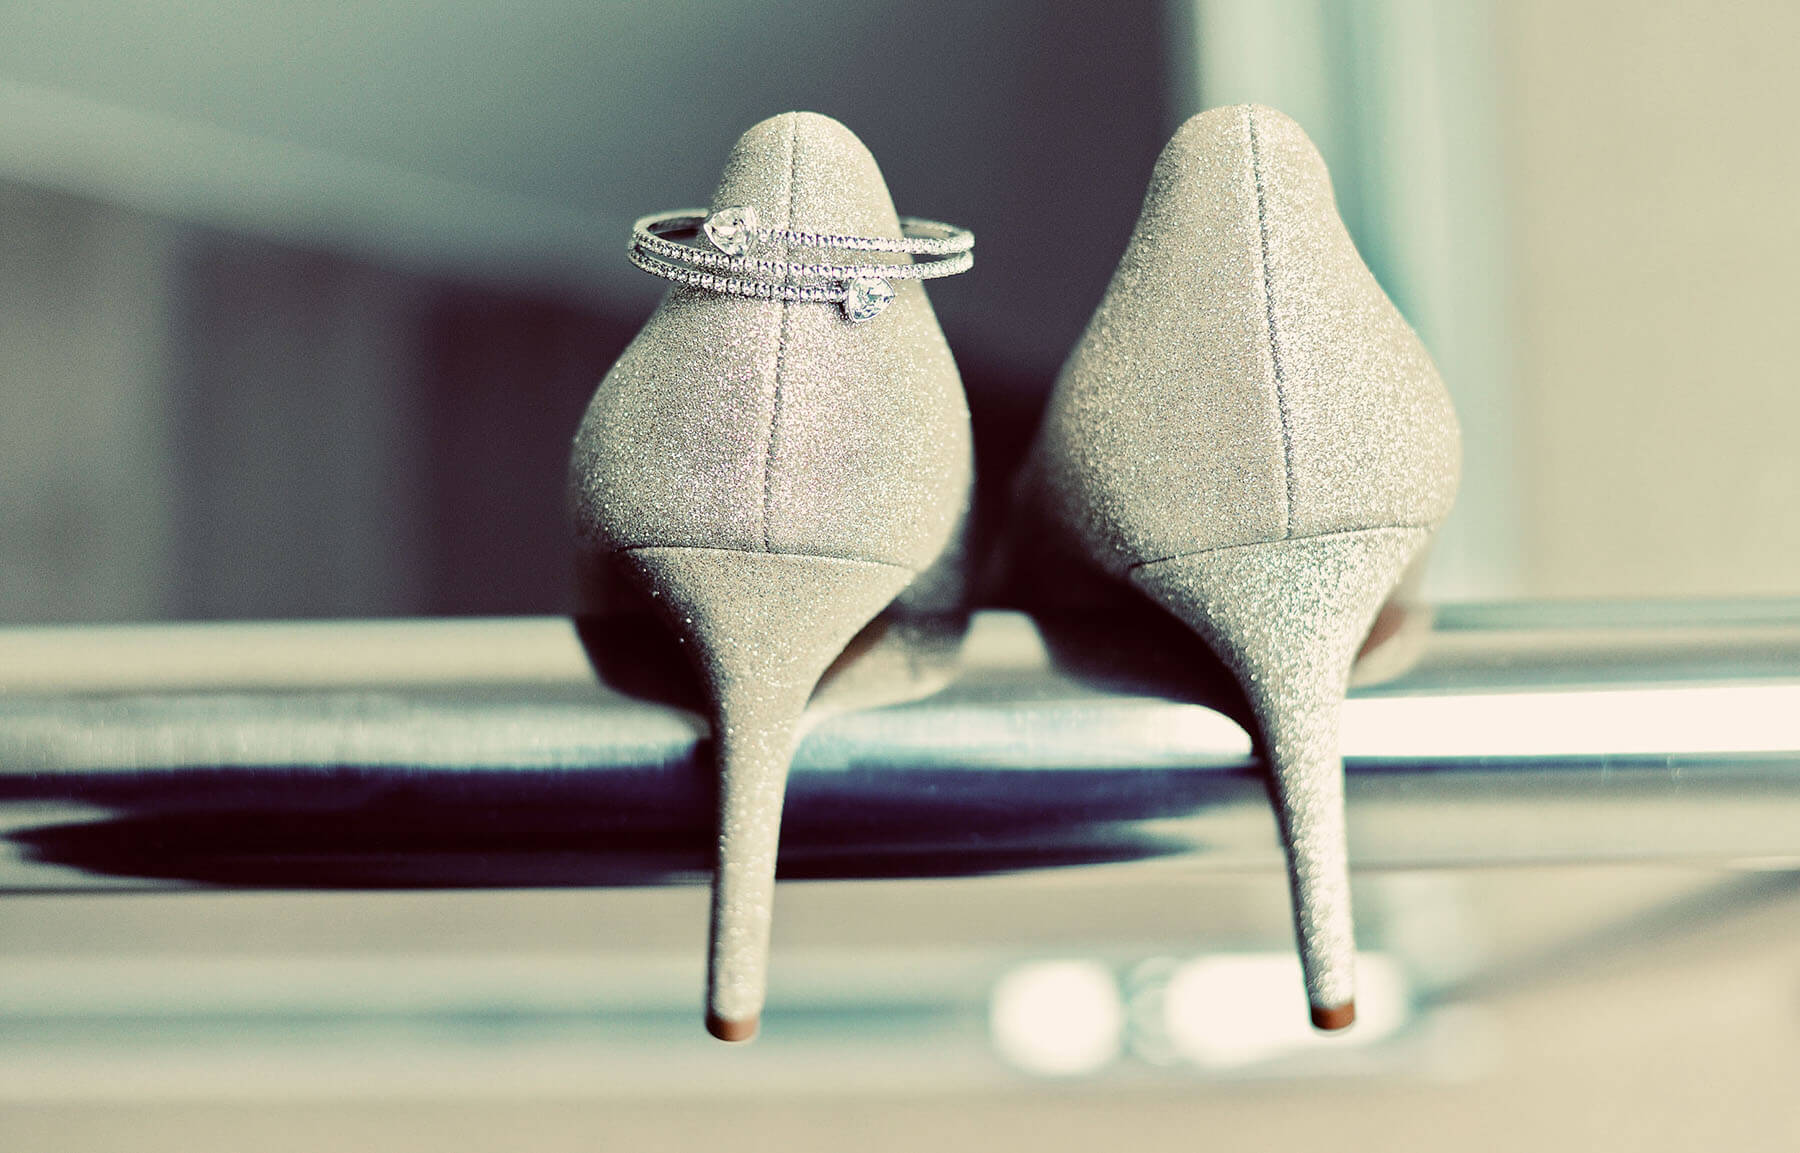 Brides wedding shoes with a bracelet placed on top